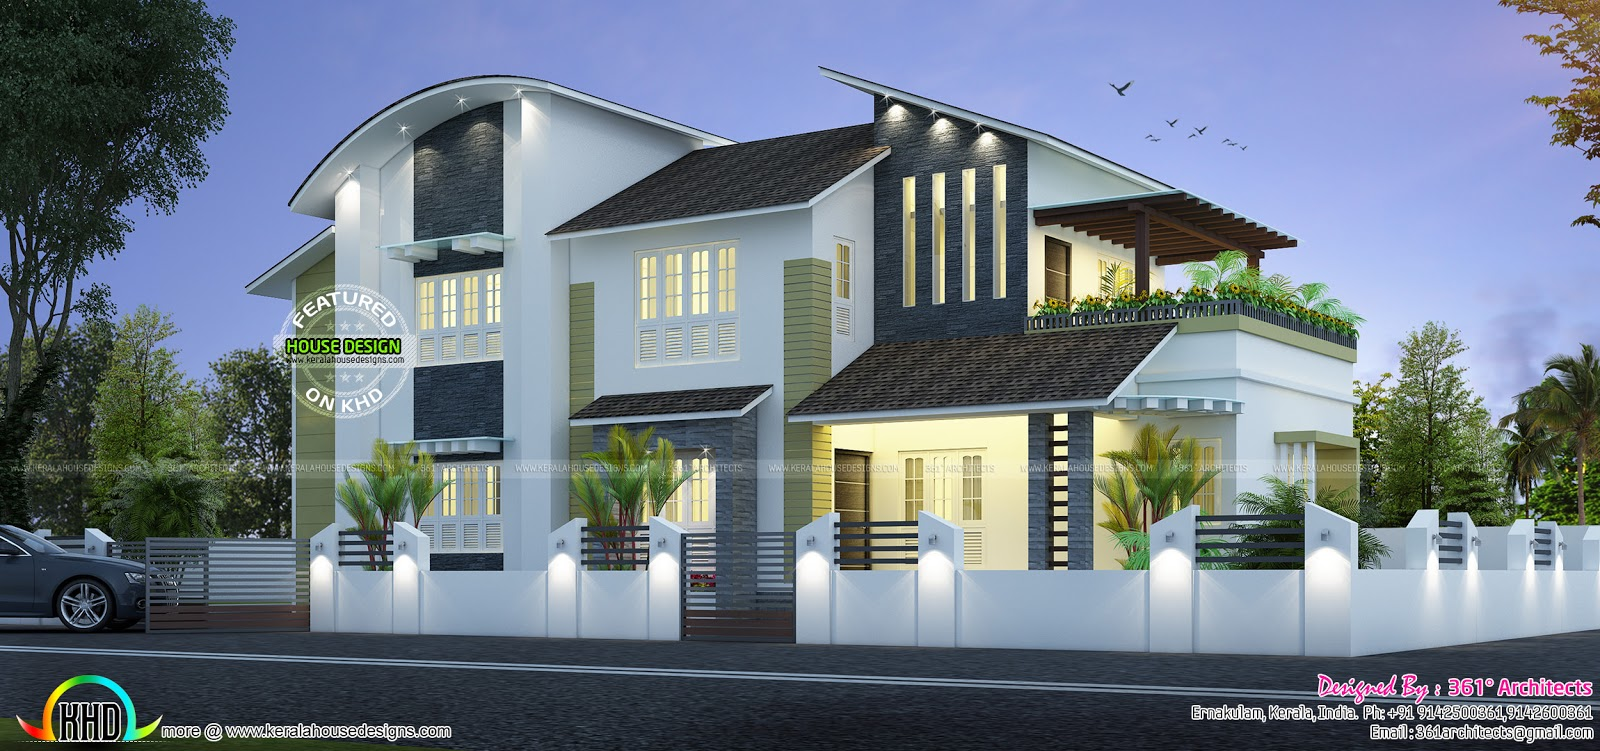 New modern house 35 lakhs kerala home design and floor plans for Contemporary floor plans for new homes